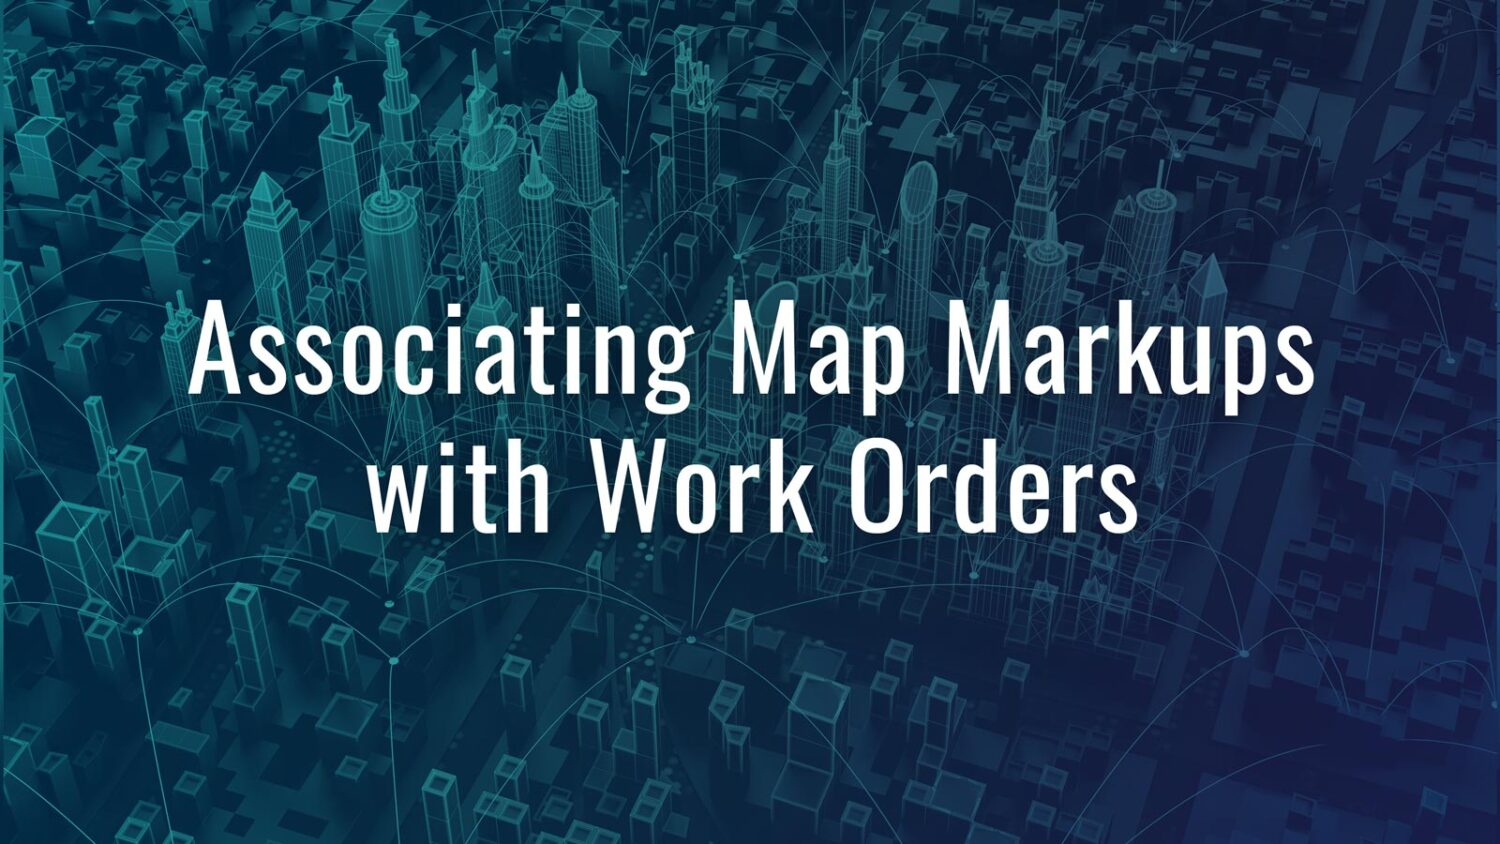 Associating Map Markups with Work Orders